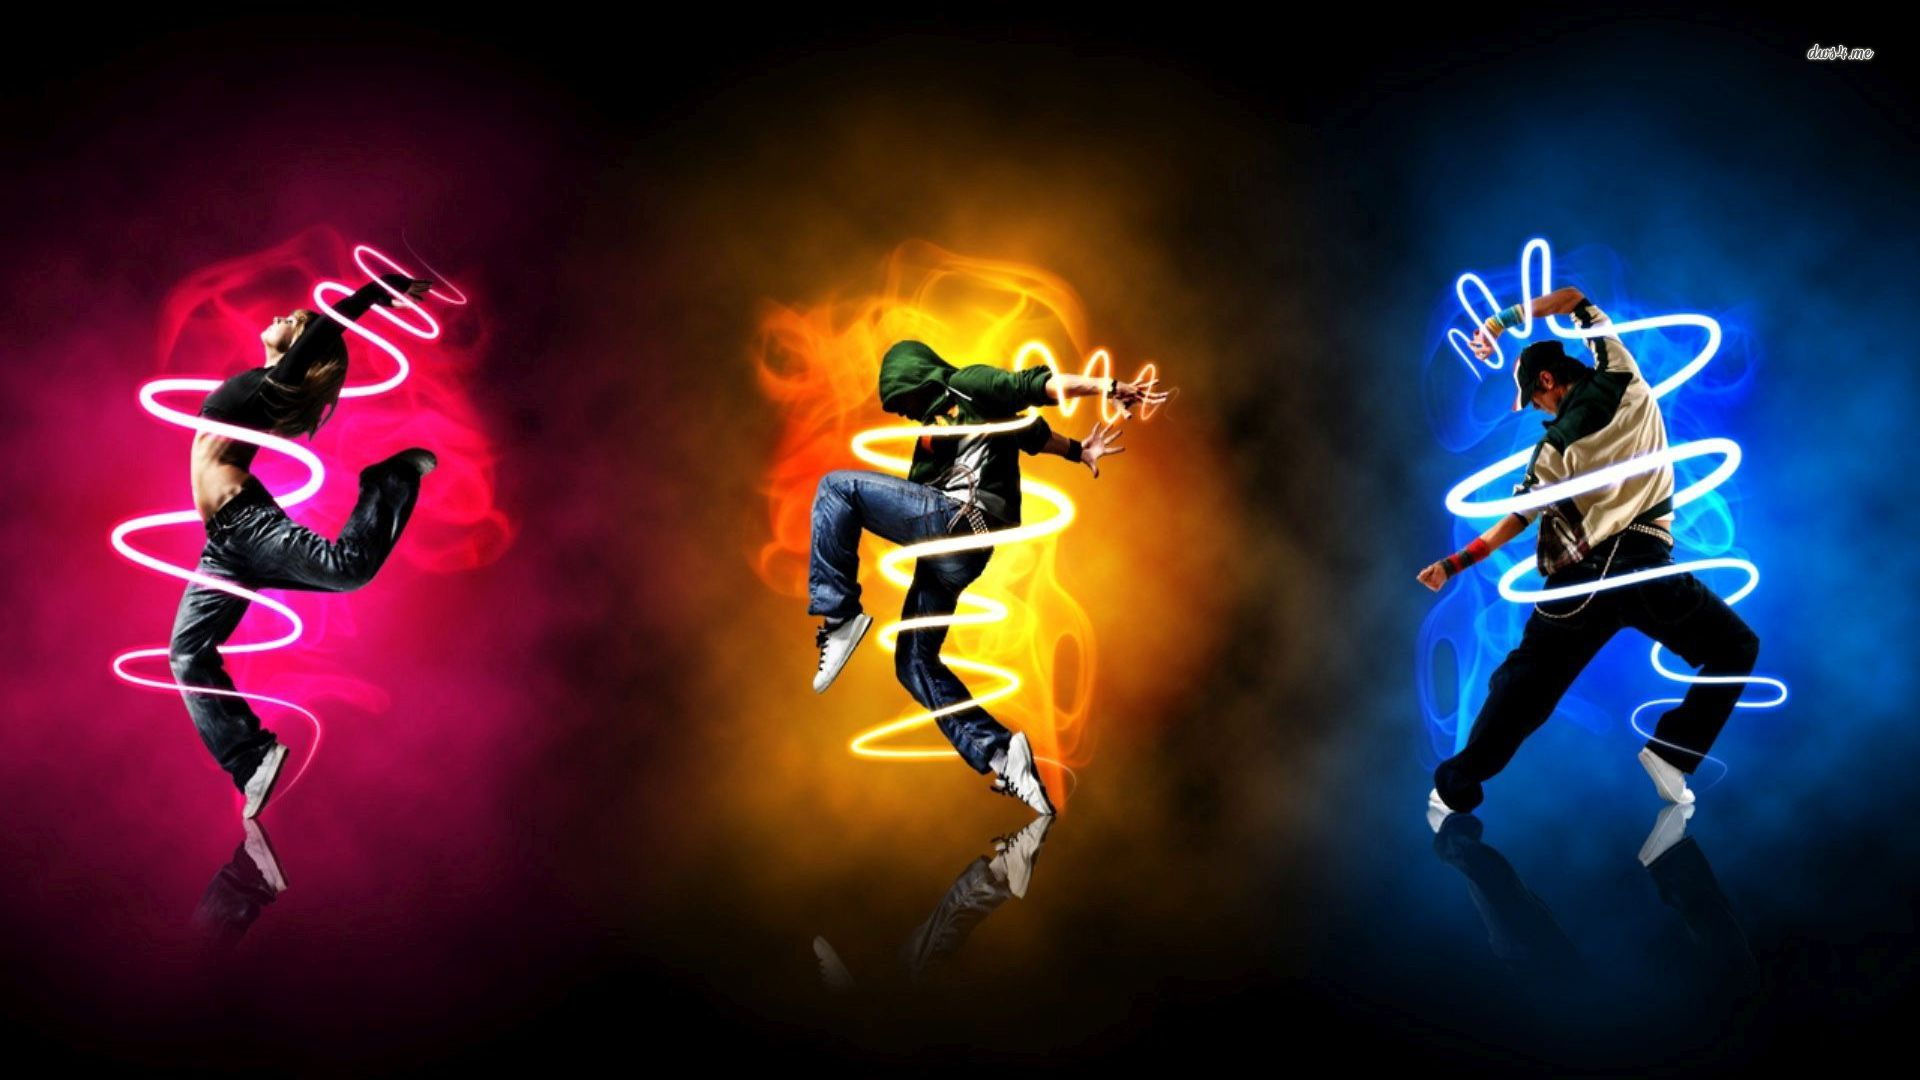 Dance Wallpaper Digital Art Wallpapers 1920x1080px